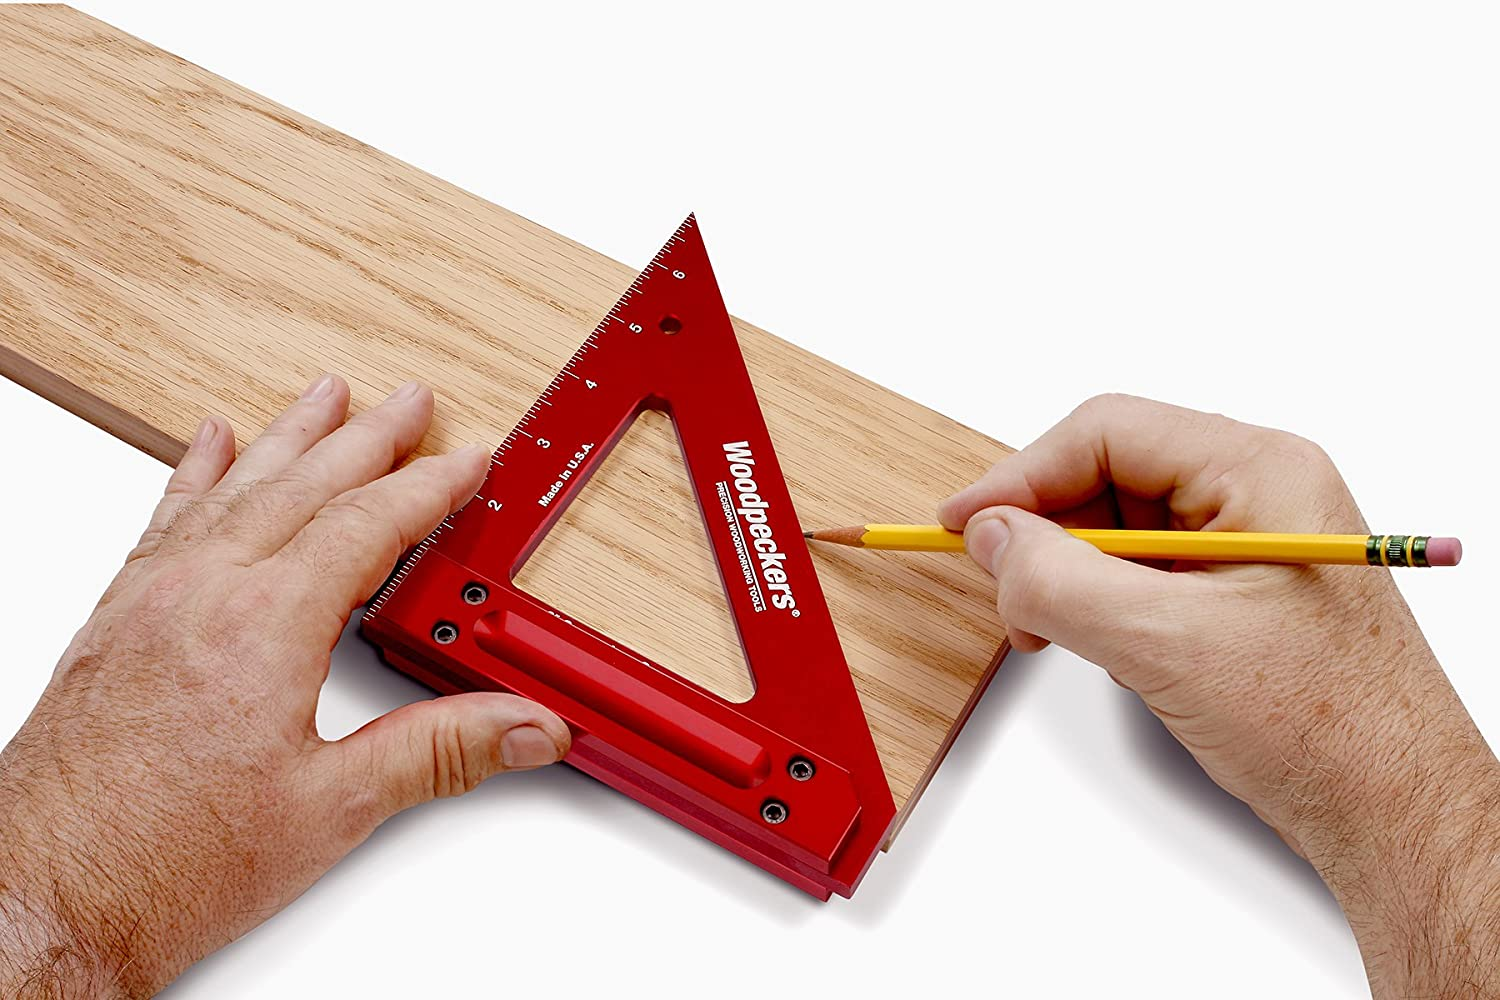 Woodpeckers Precision Woodworking Tools Crpsq6 Inrd Carpenters